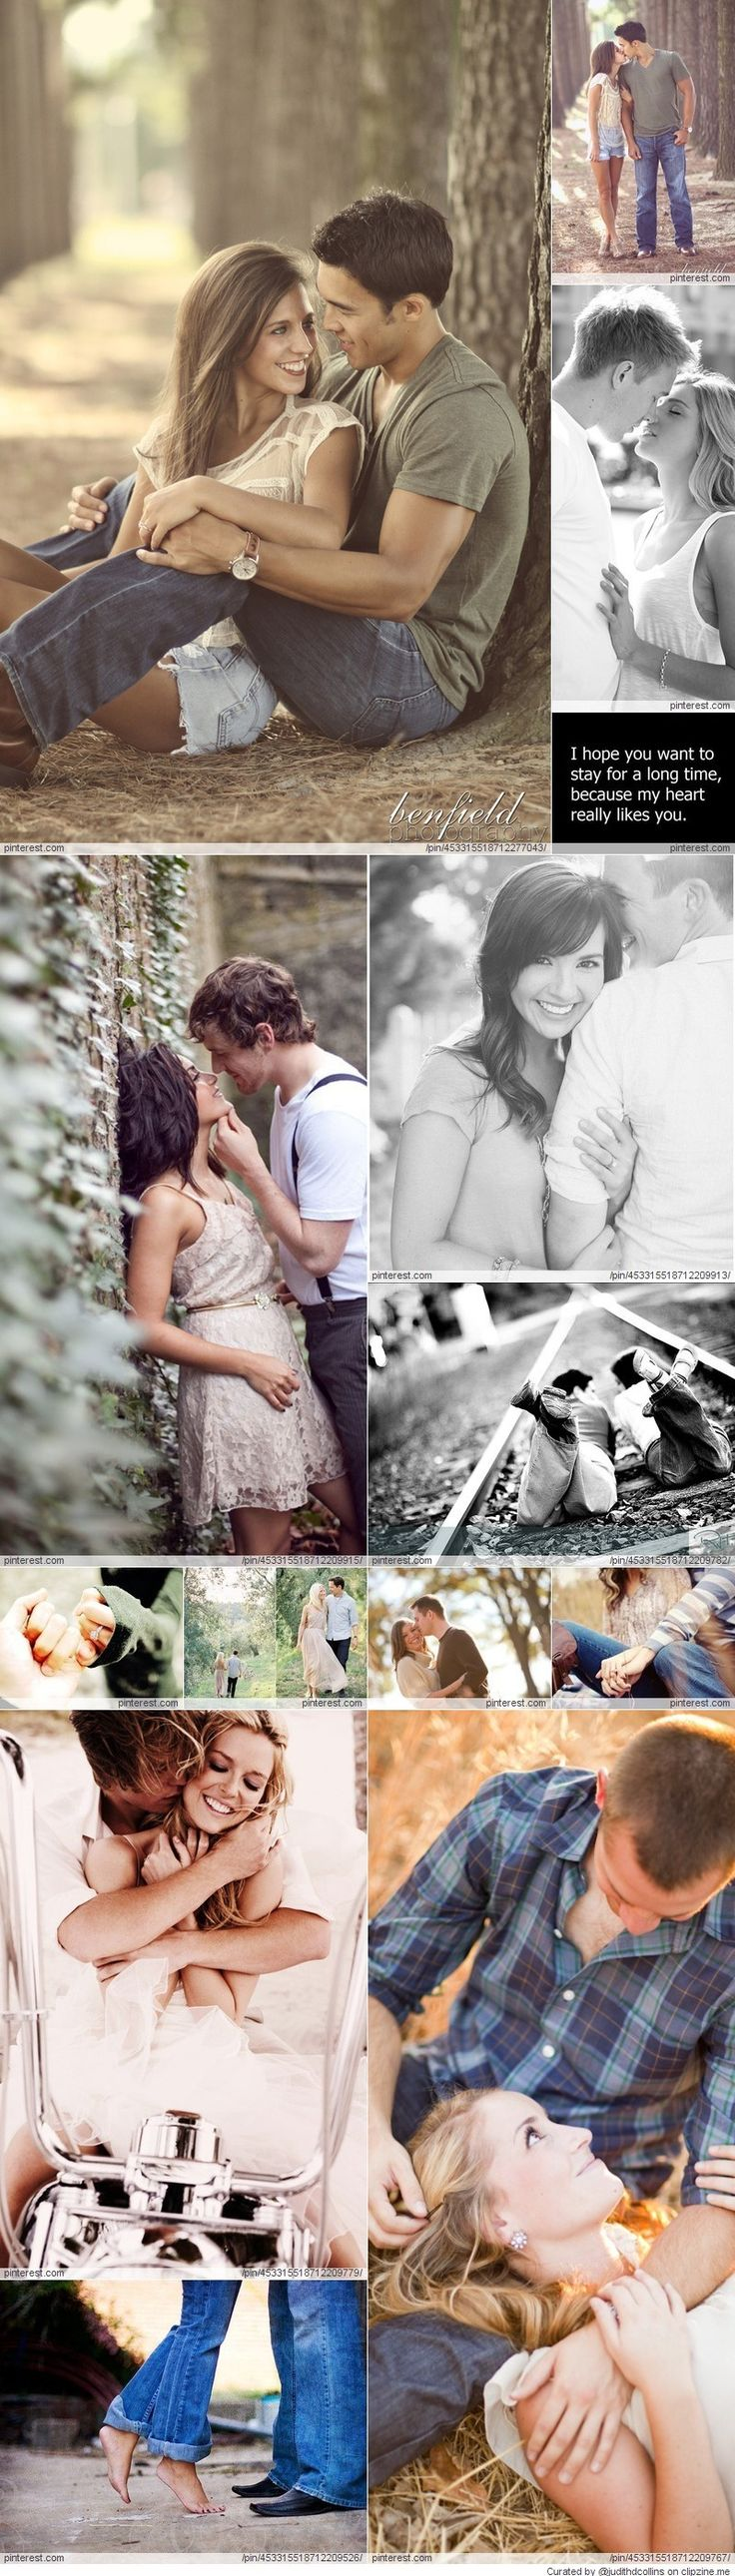 Engagement Photography:soooo cute @brianderson467  these are some great outfit ideas too! just like the contrast!